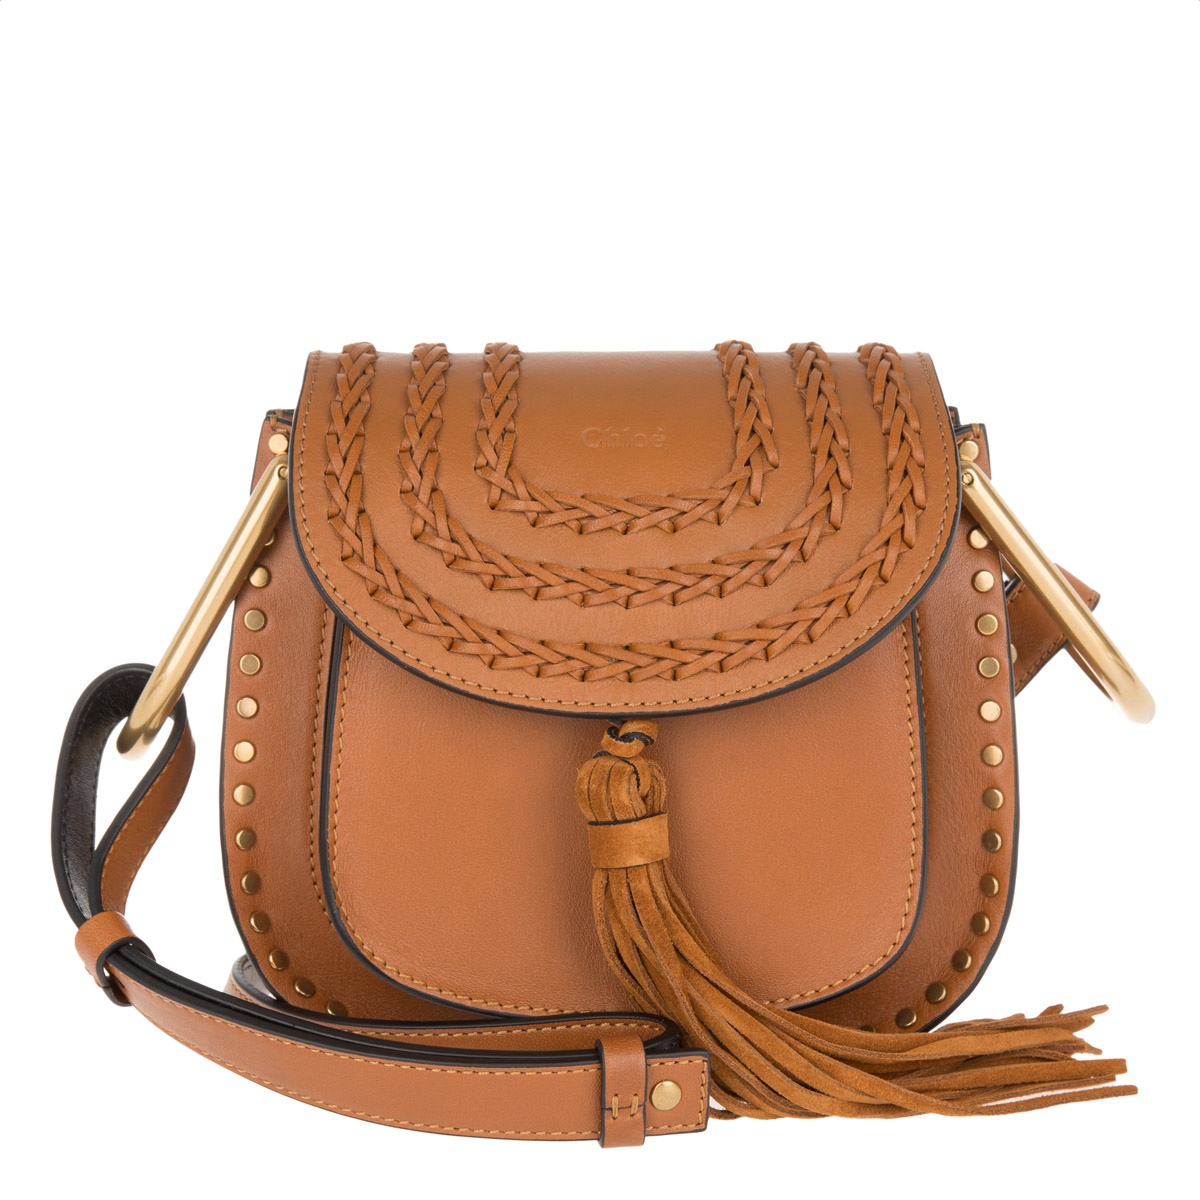 Fashionette Chloé Saddle Bag